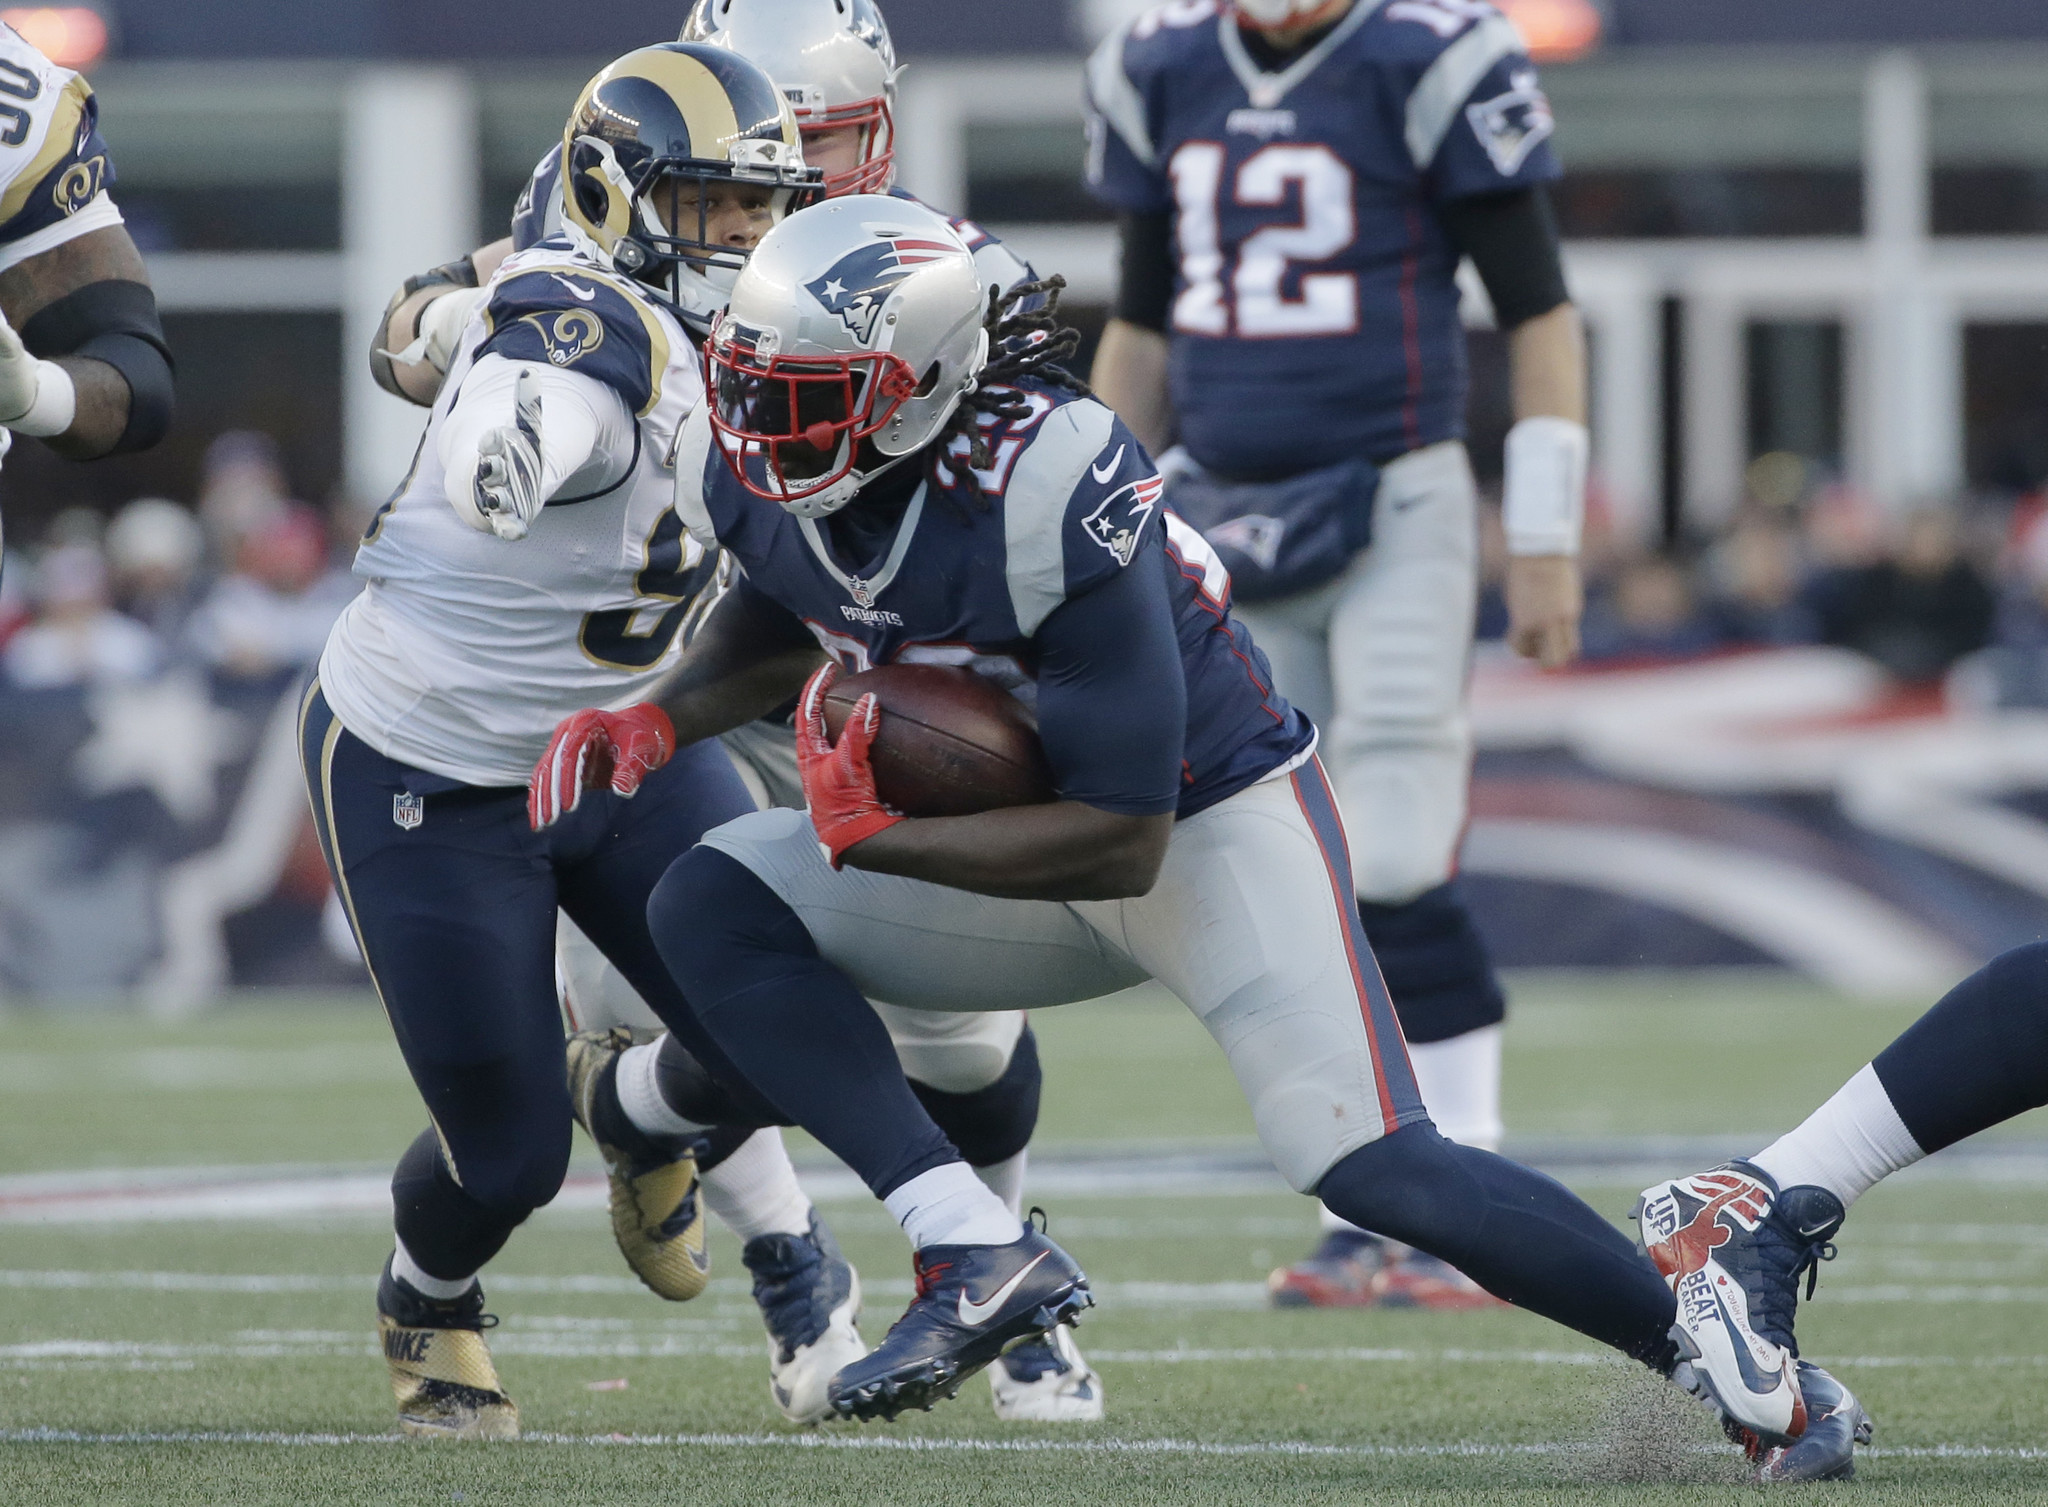 Bal-gang-tackling-will-be-crucial-for-ravens-against-patriots-running-back-legarrette-blount-20161209